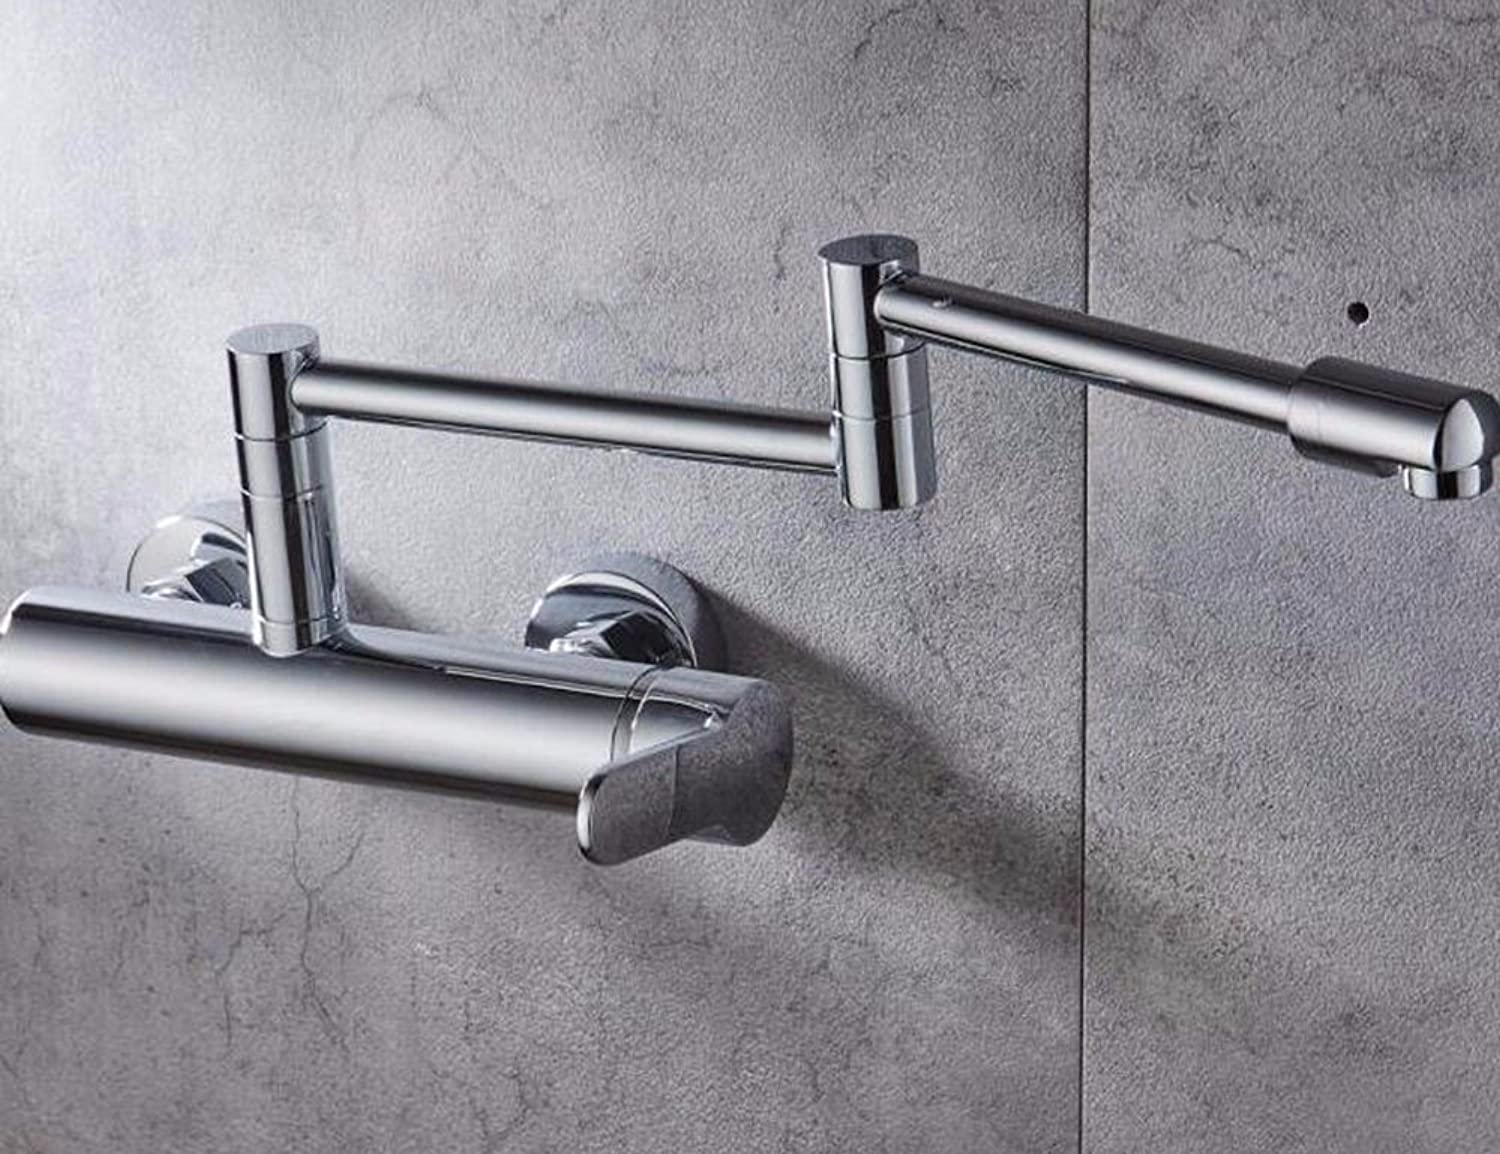 Qmpzg-All Copper Wall Mounted Hot And Cold Shower?Kitchen Faucet?Laundry Pool Cuisine Basin Of Water Taps Slot?Click To redate The Faucet?C